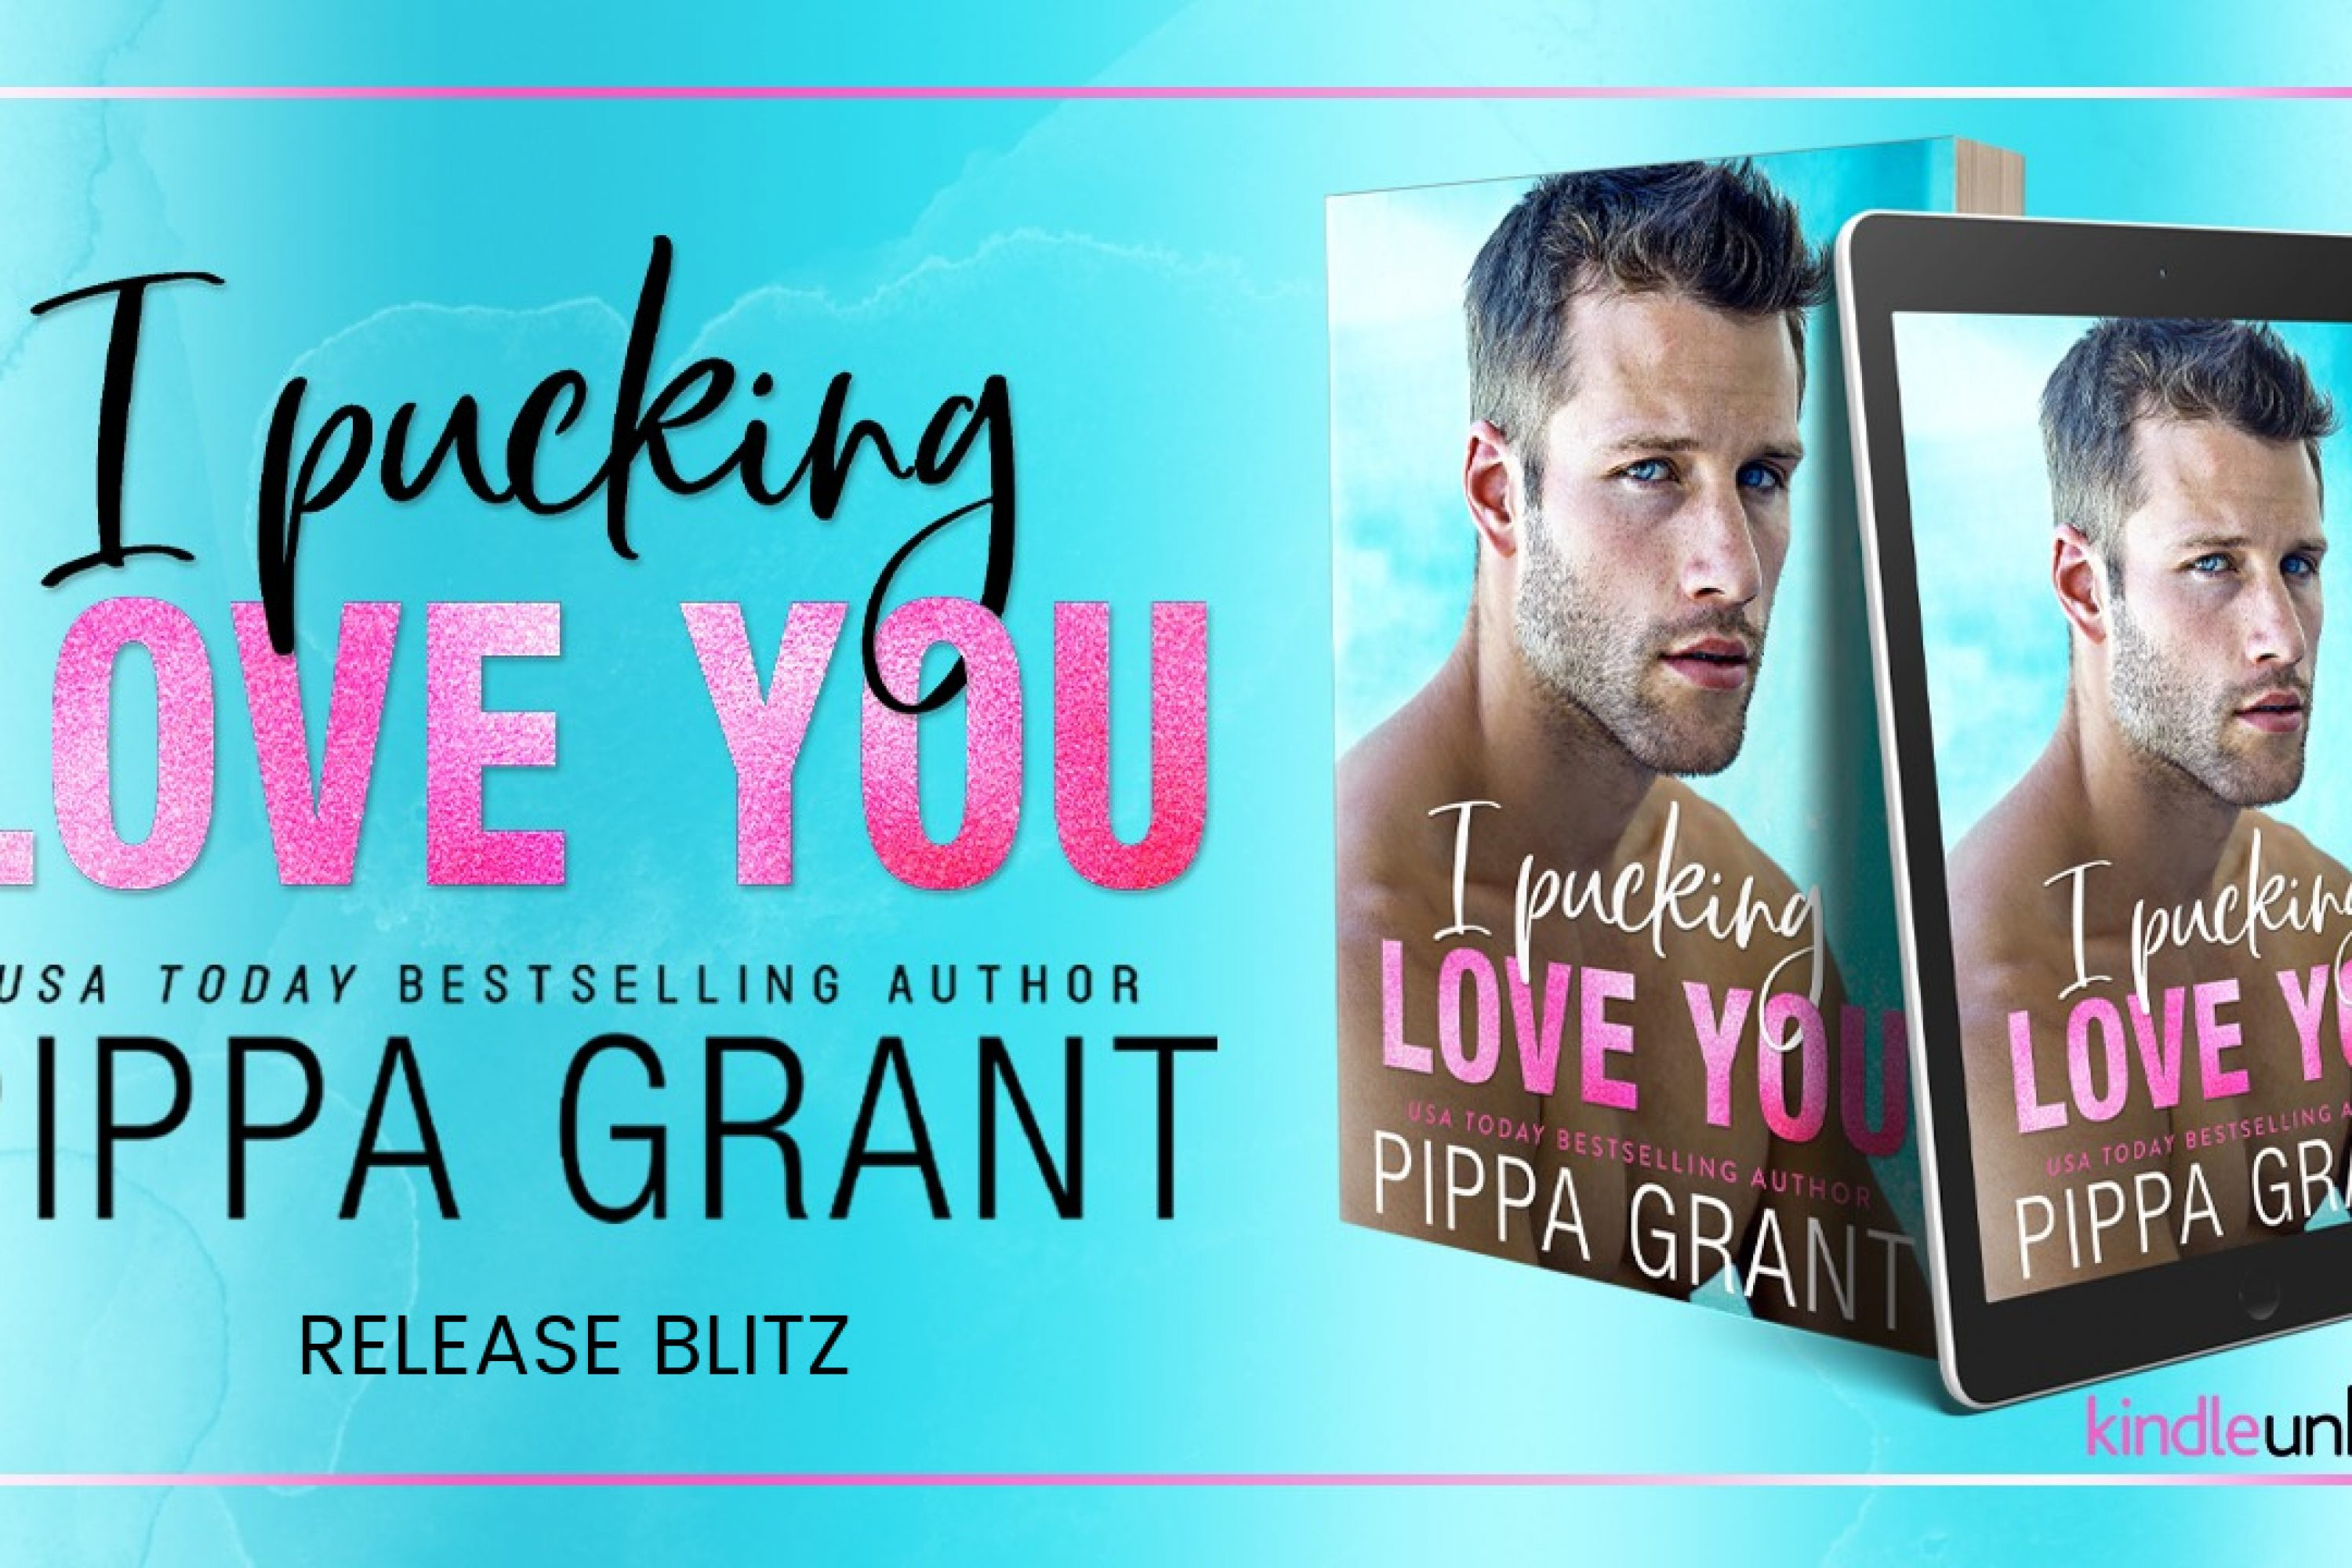 Release Blitz: I Pucking Love You by Pippa Grant